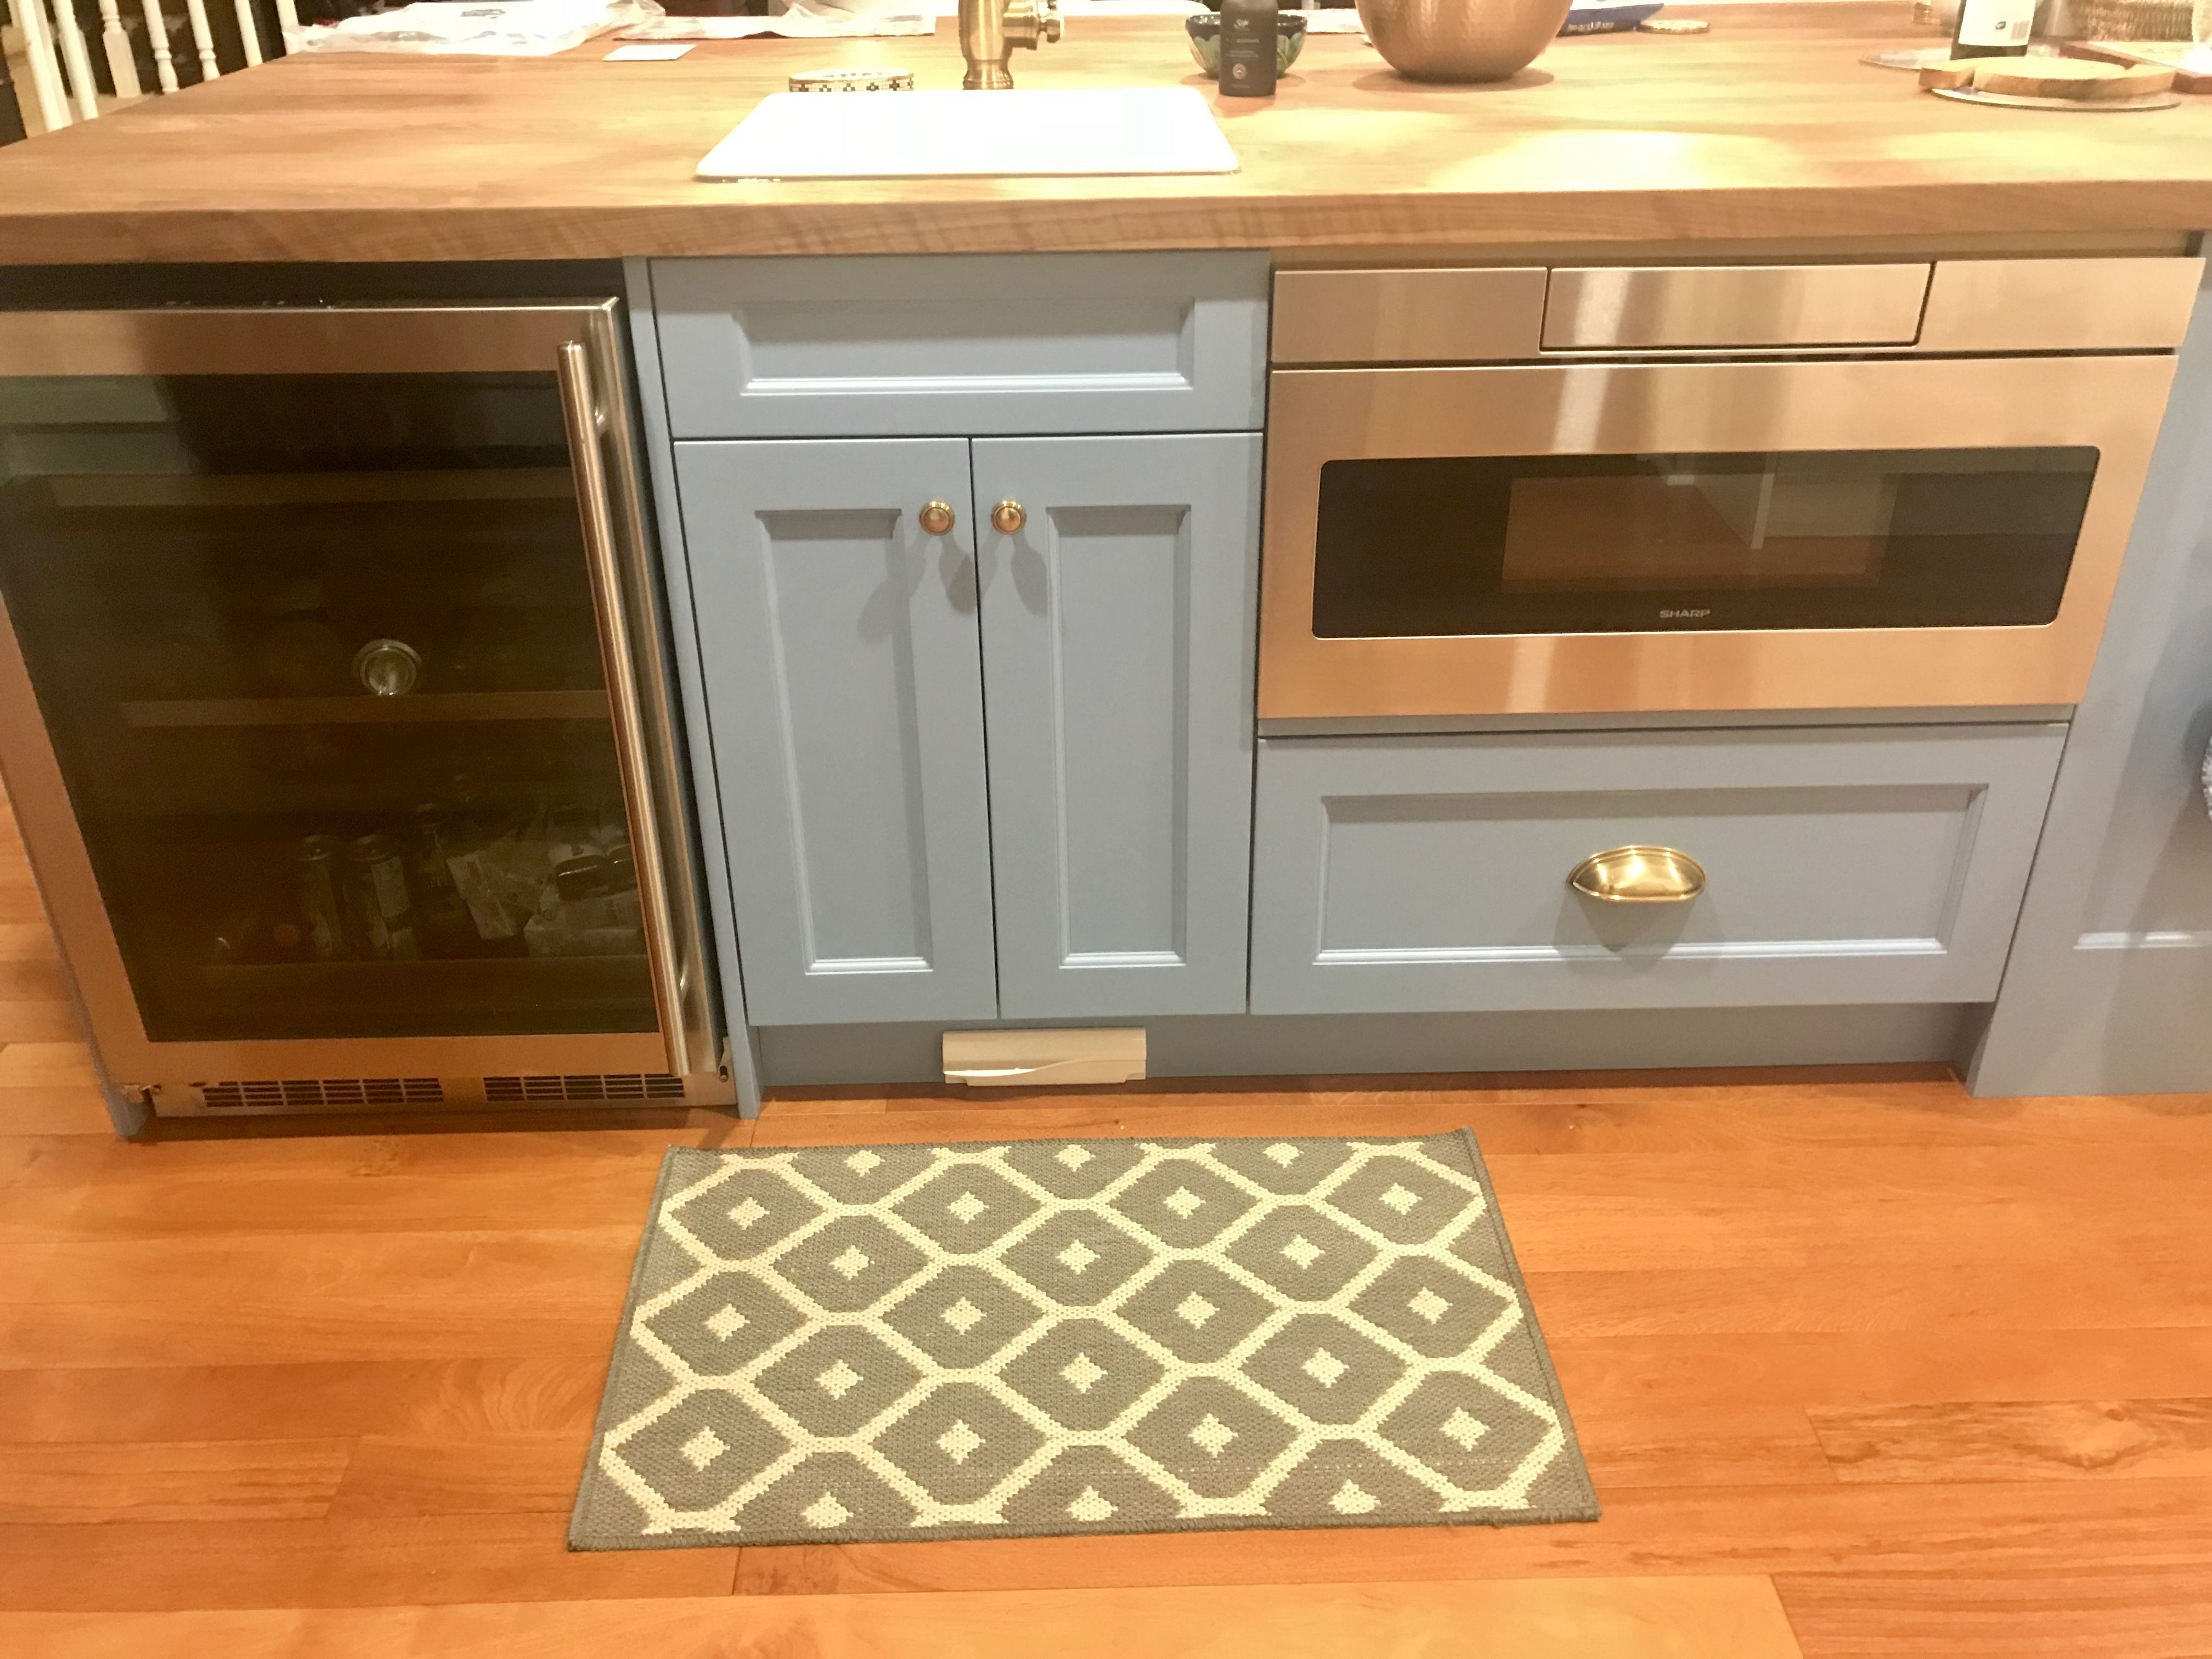 Wine Fridge And Drawer Microwave In The Island Kitchen Island With Sink Kitchen Wine Fridge Home Kitchens